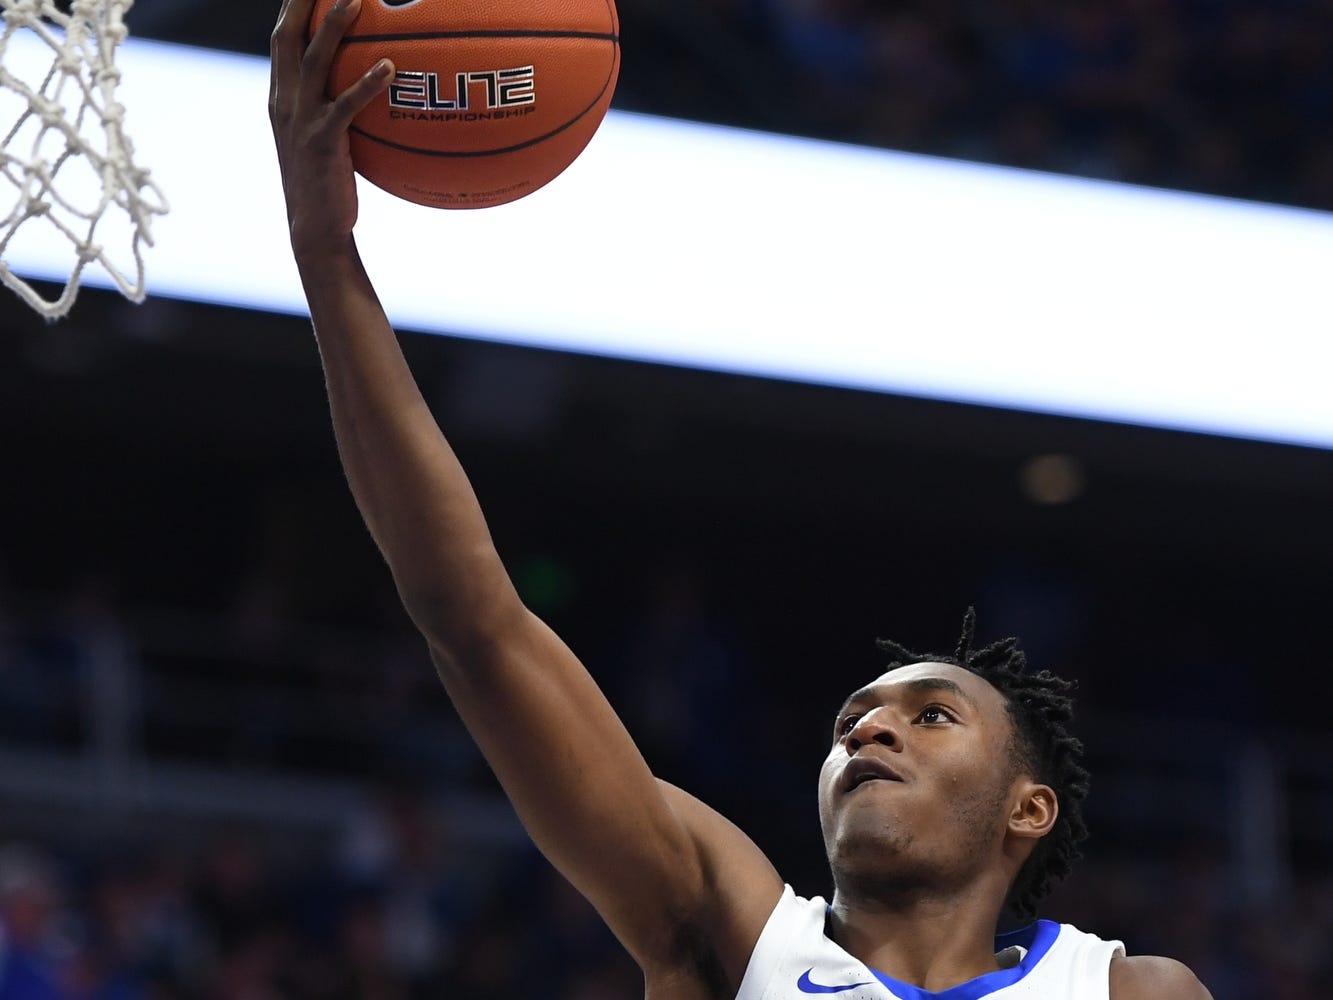 Immanuel Quickley lays up the ball during the University of Kentucky basketball game against Transylvania at Rupp Arena in Lexington on Friday, Oct. 26, 2018.